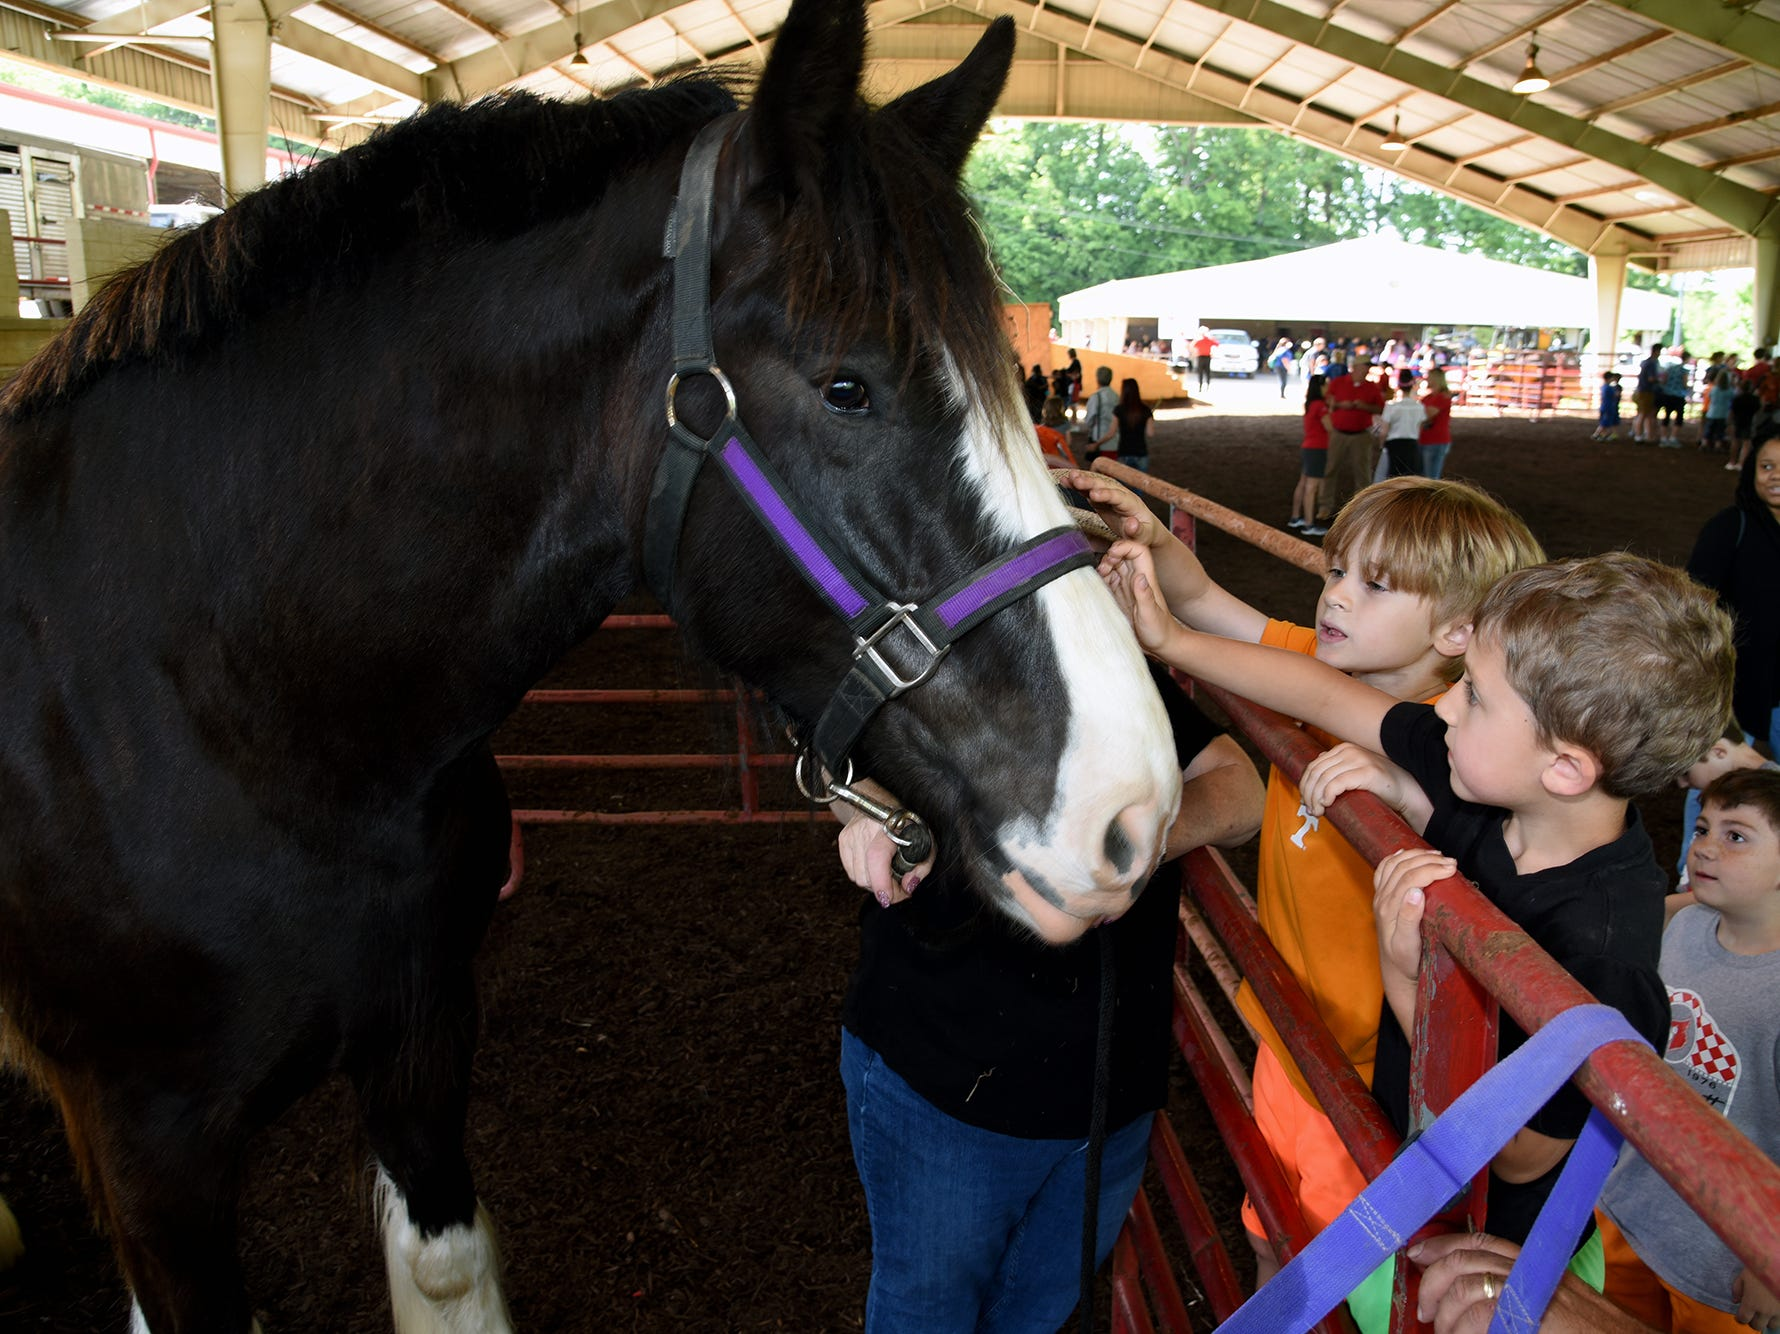 Bonny Kate Elementary School students Caleb Egeland, left, and Jack McCarthy pet Vino, a 5-year-old black Clydesdale owned by Cindy Conner of Karns. Over 600 Knox County School children attended the annual Knox County Farm Bureau Ag in the Classroom Farm Day at Chilhowee Park Tuesday, May 7, 2019.